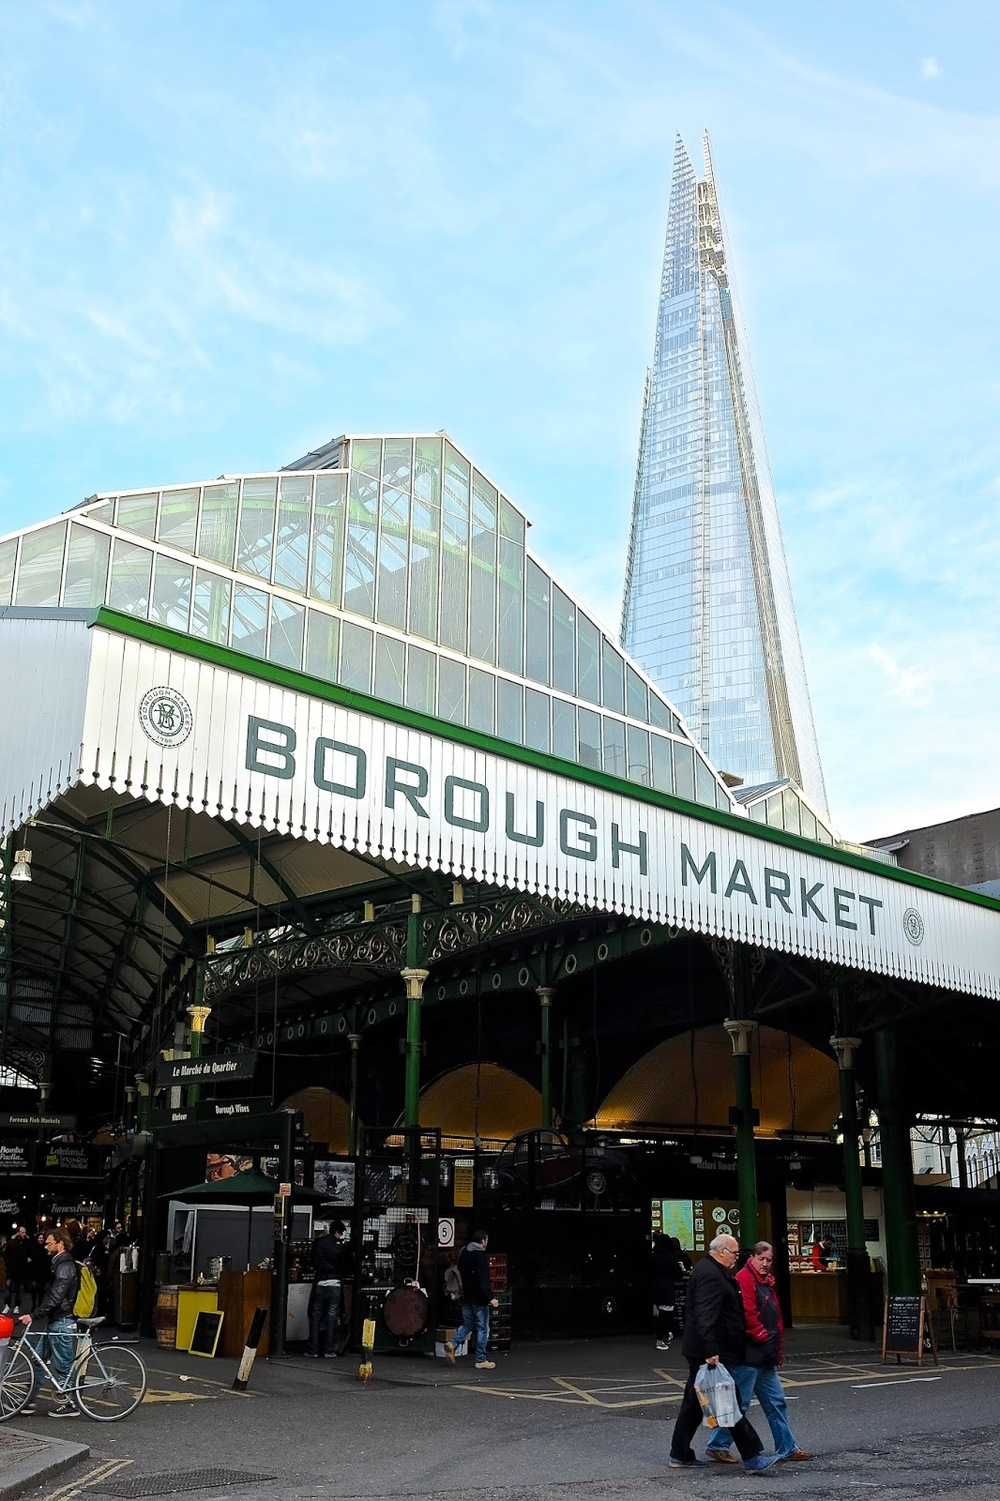 The Shard can be seen from Borough market